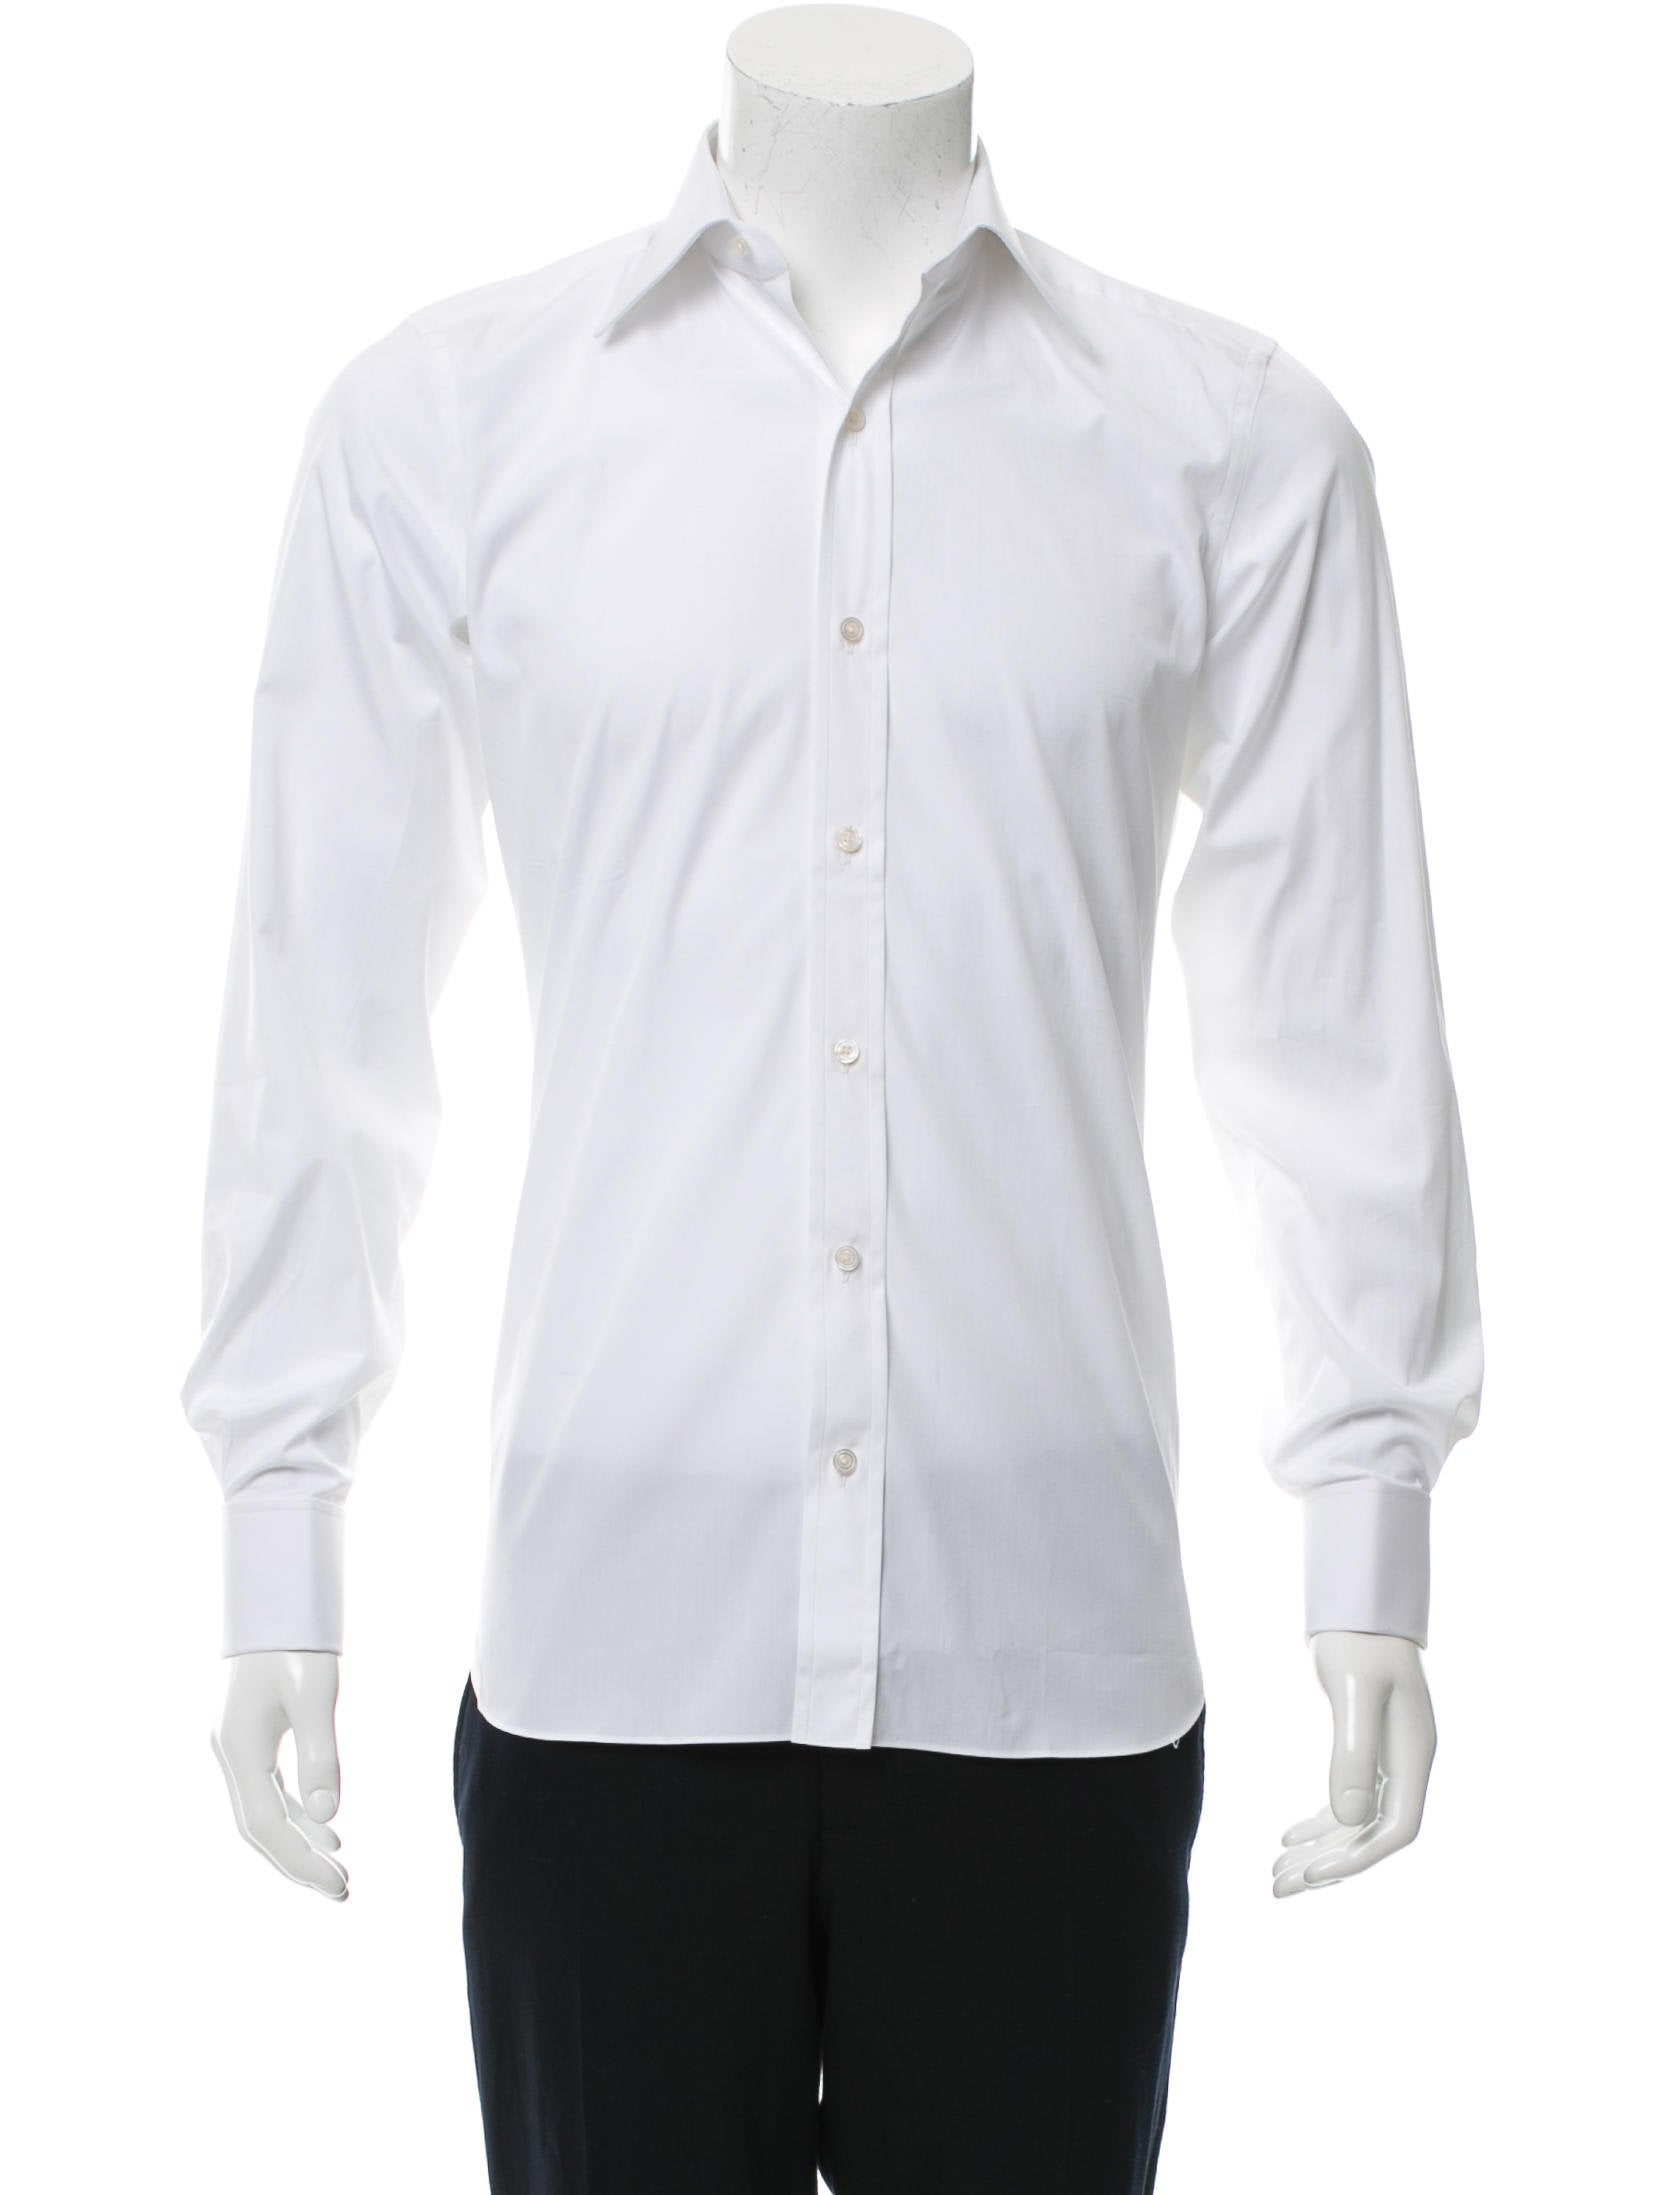 Tom ford french cuff button up shirt clothing tom34854 for French cuff dress shirts for sale